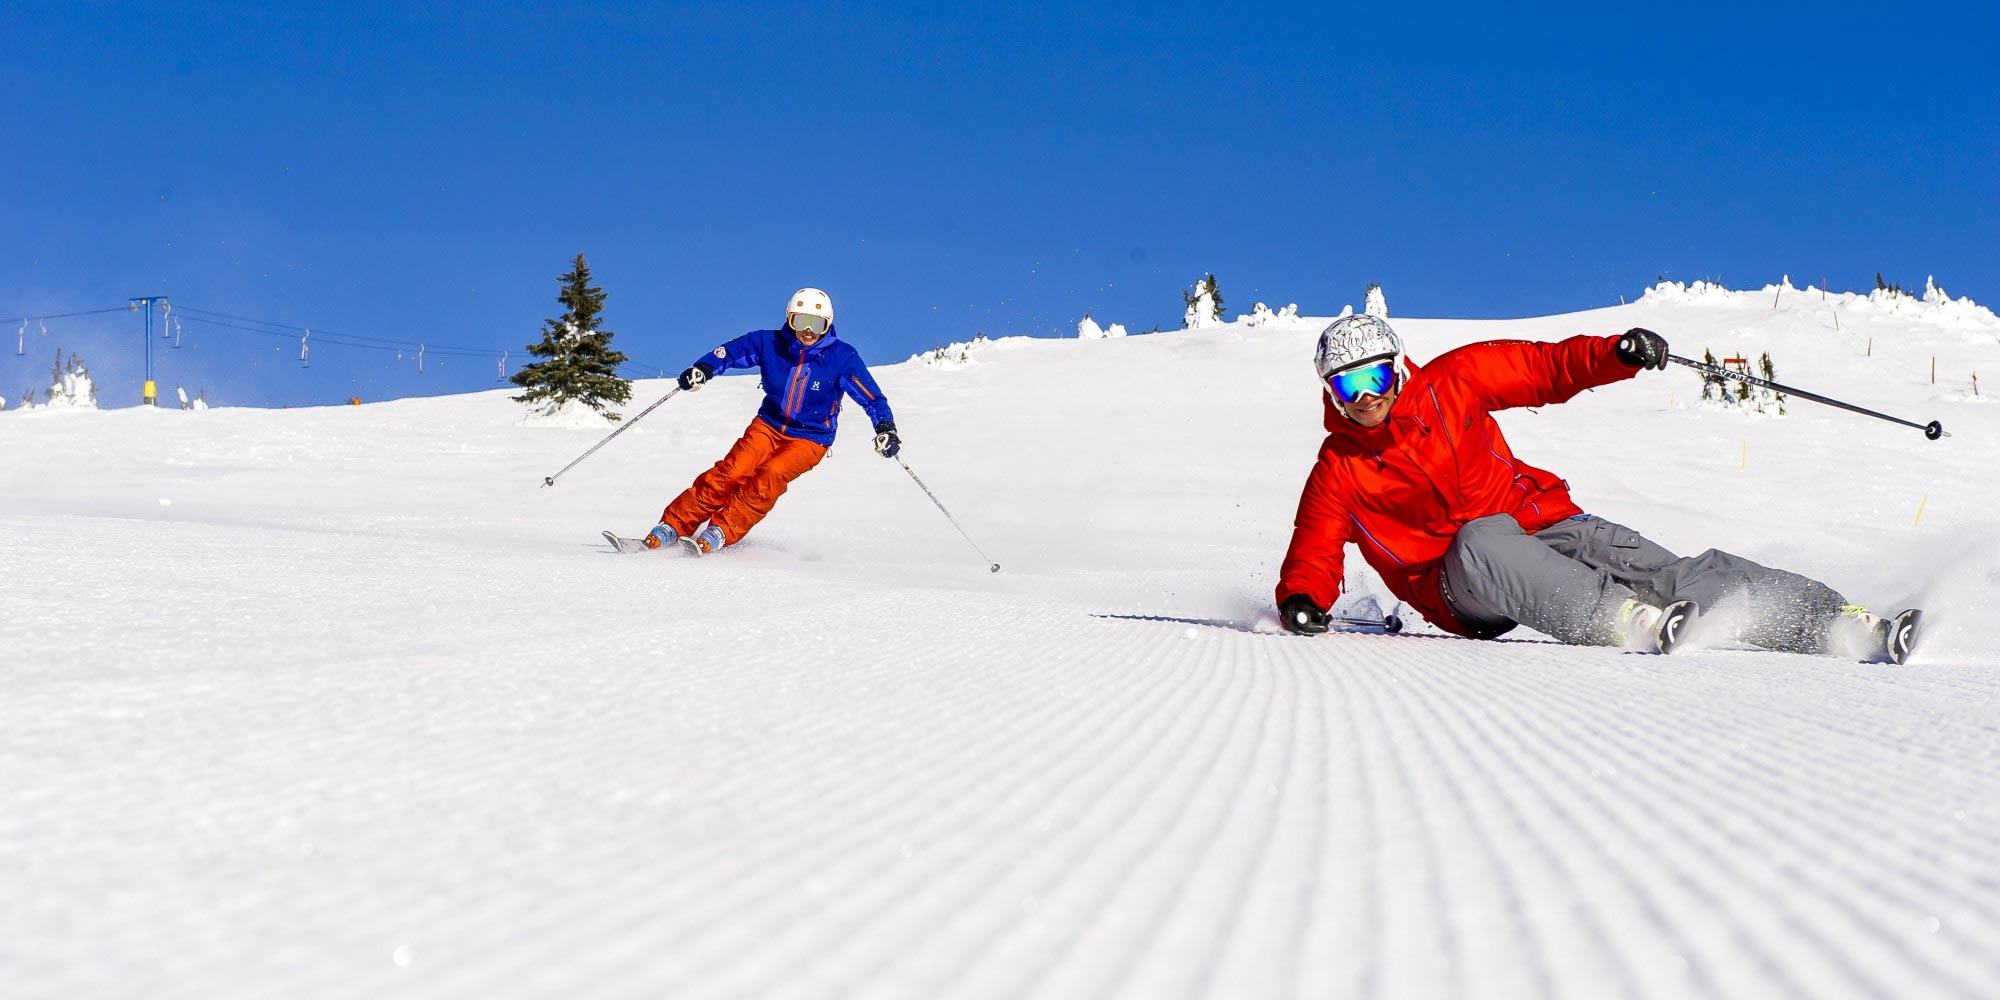 Skiing-Instructor-Lesson-Carving-SM